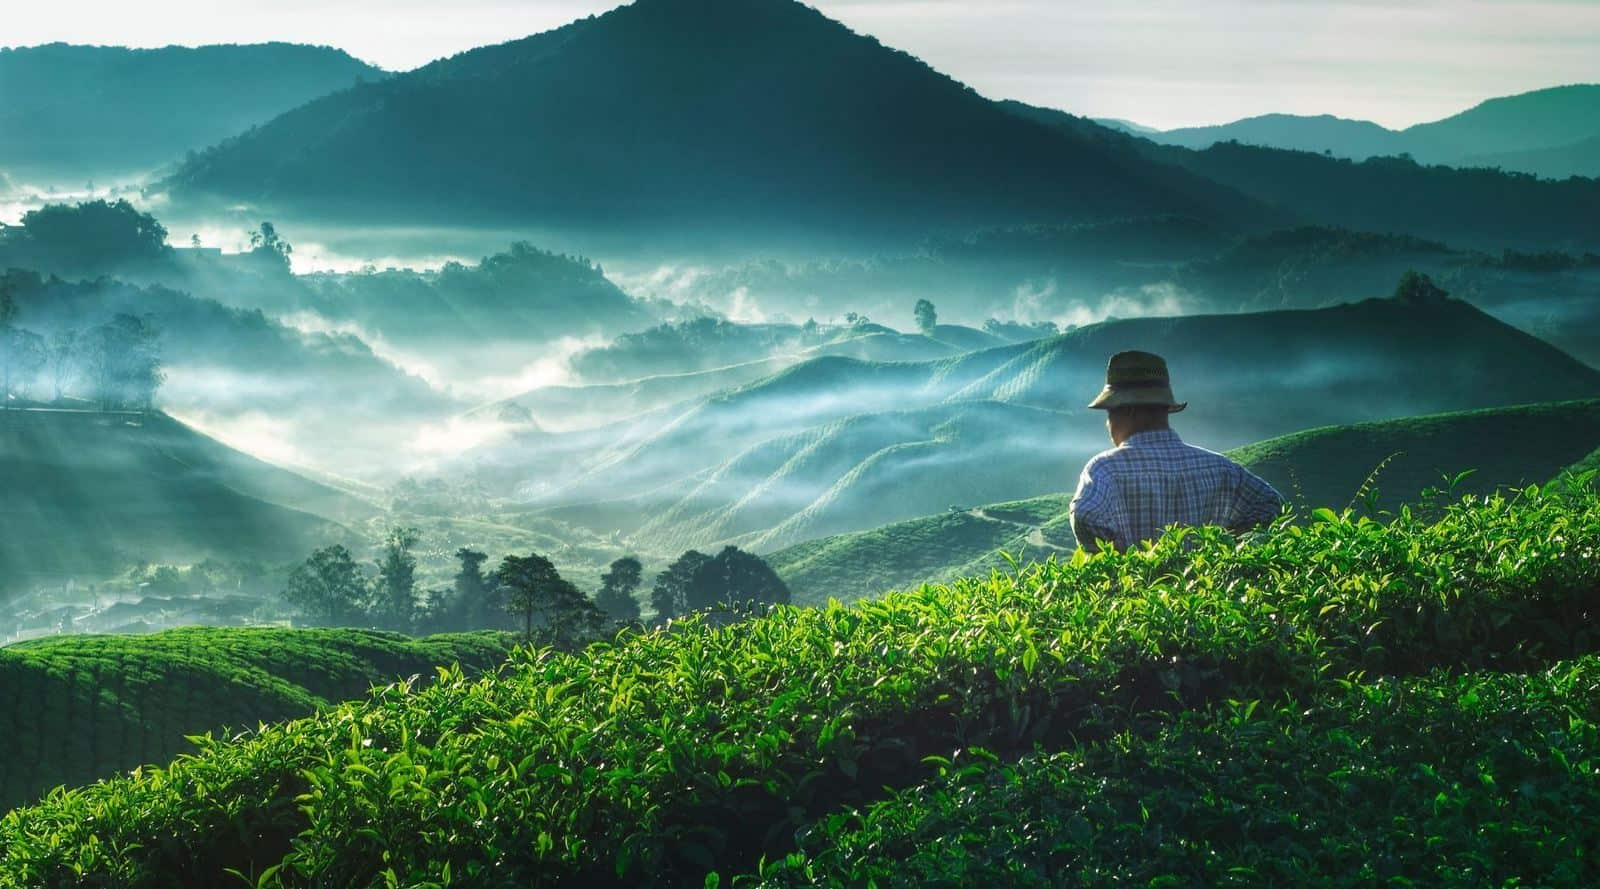 what are the climatic requirements for growing tea?